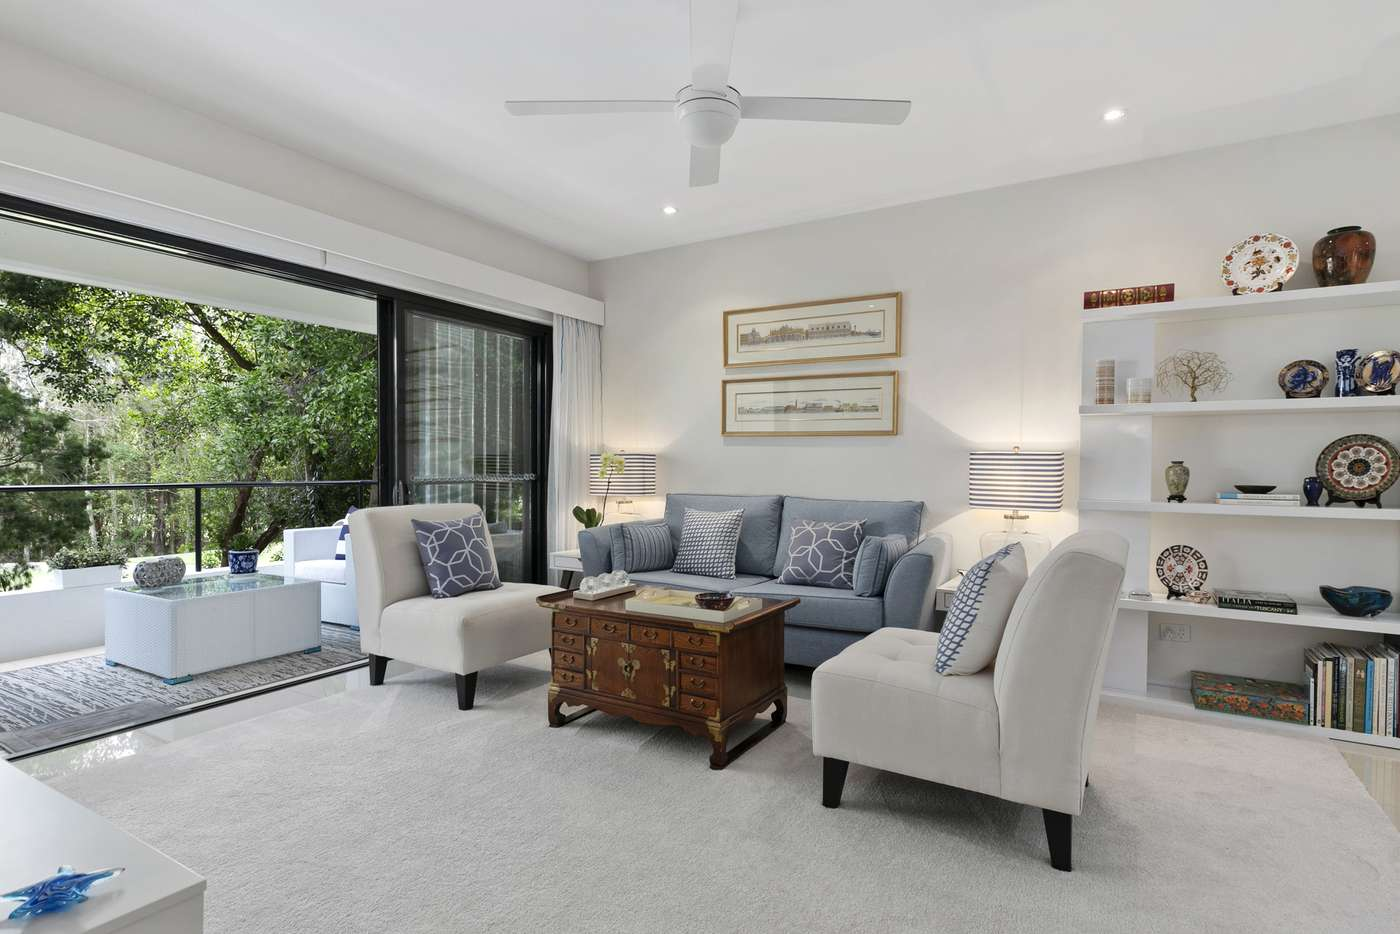 Sixth view of Homely apartment listing, Unit 804/100 Resort Dr, Noosa Springs QLD 4567